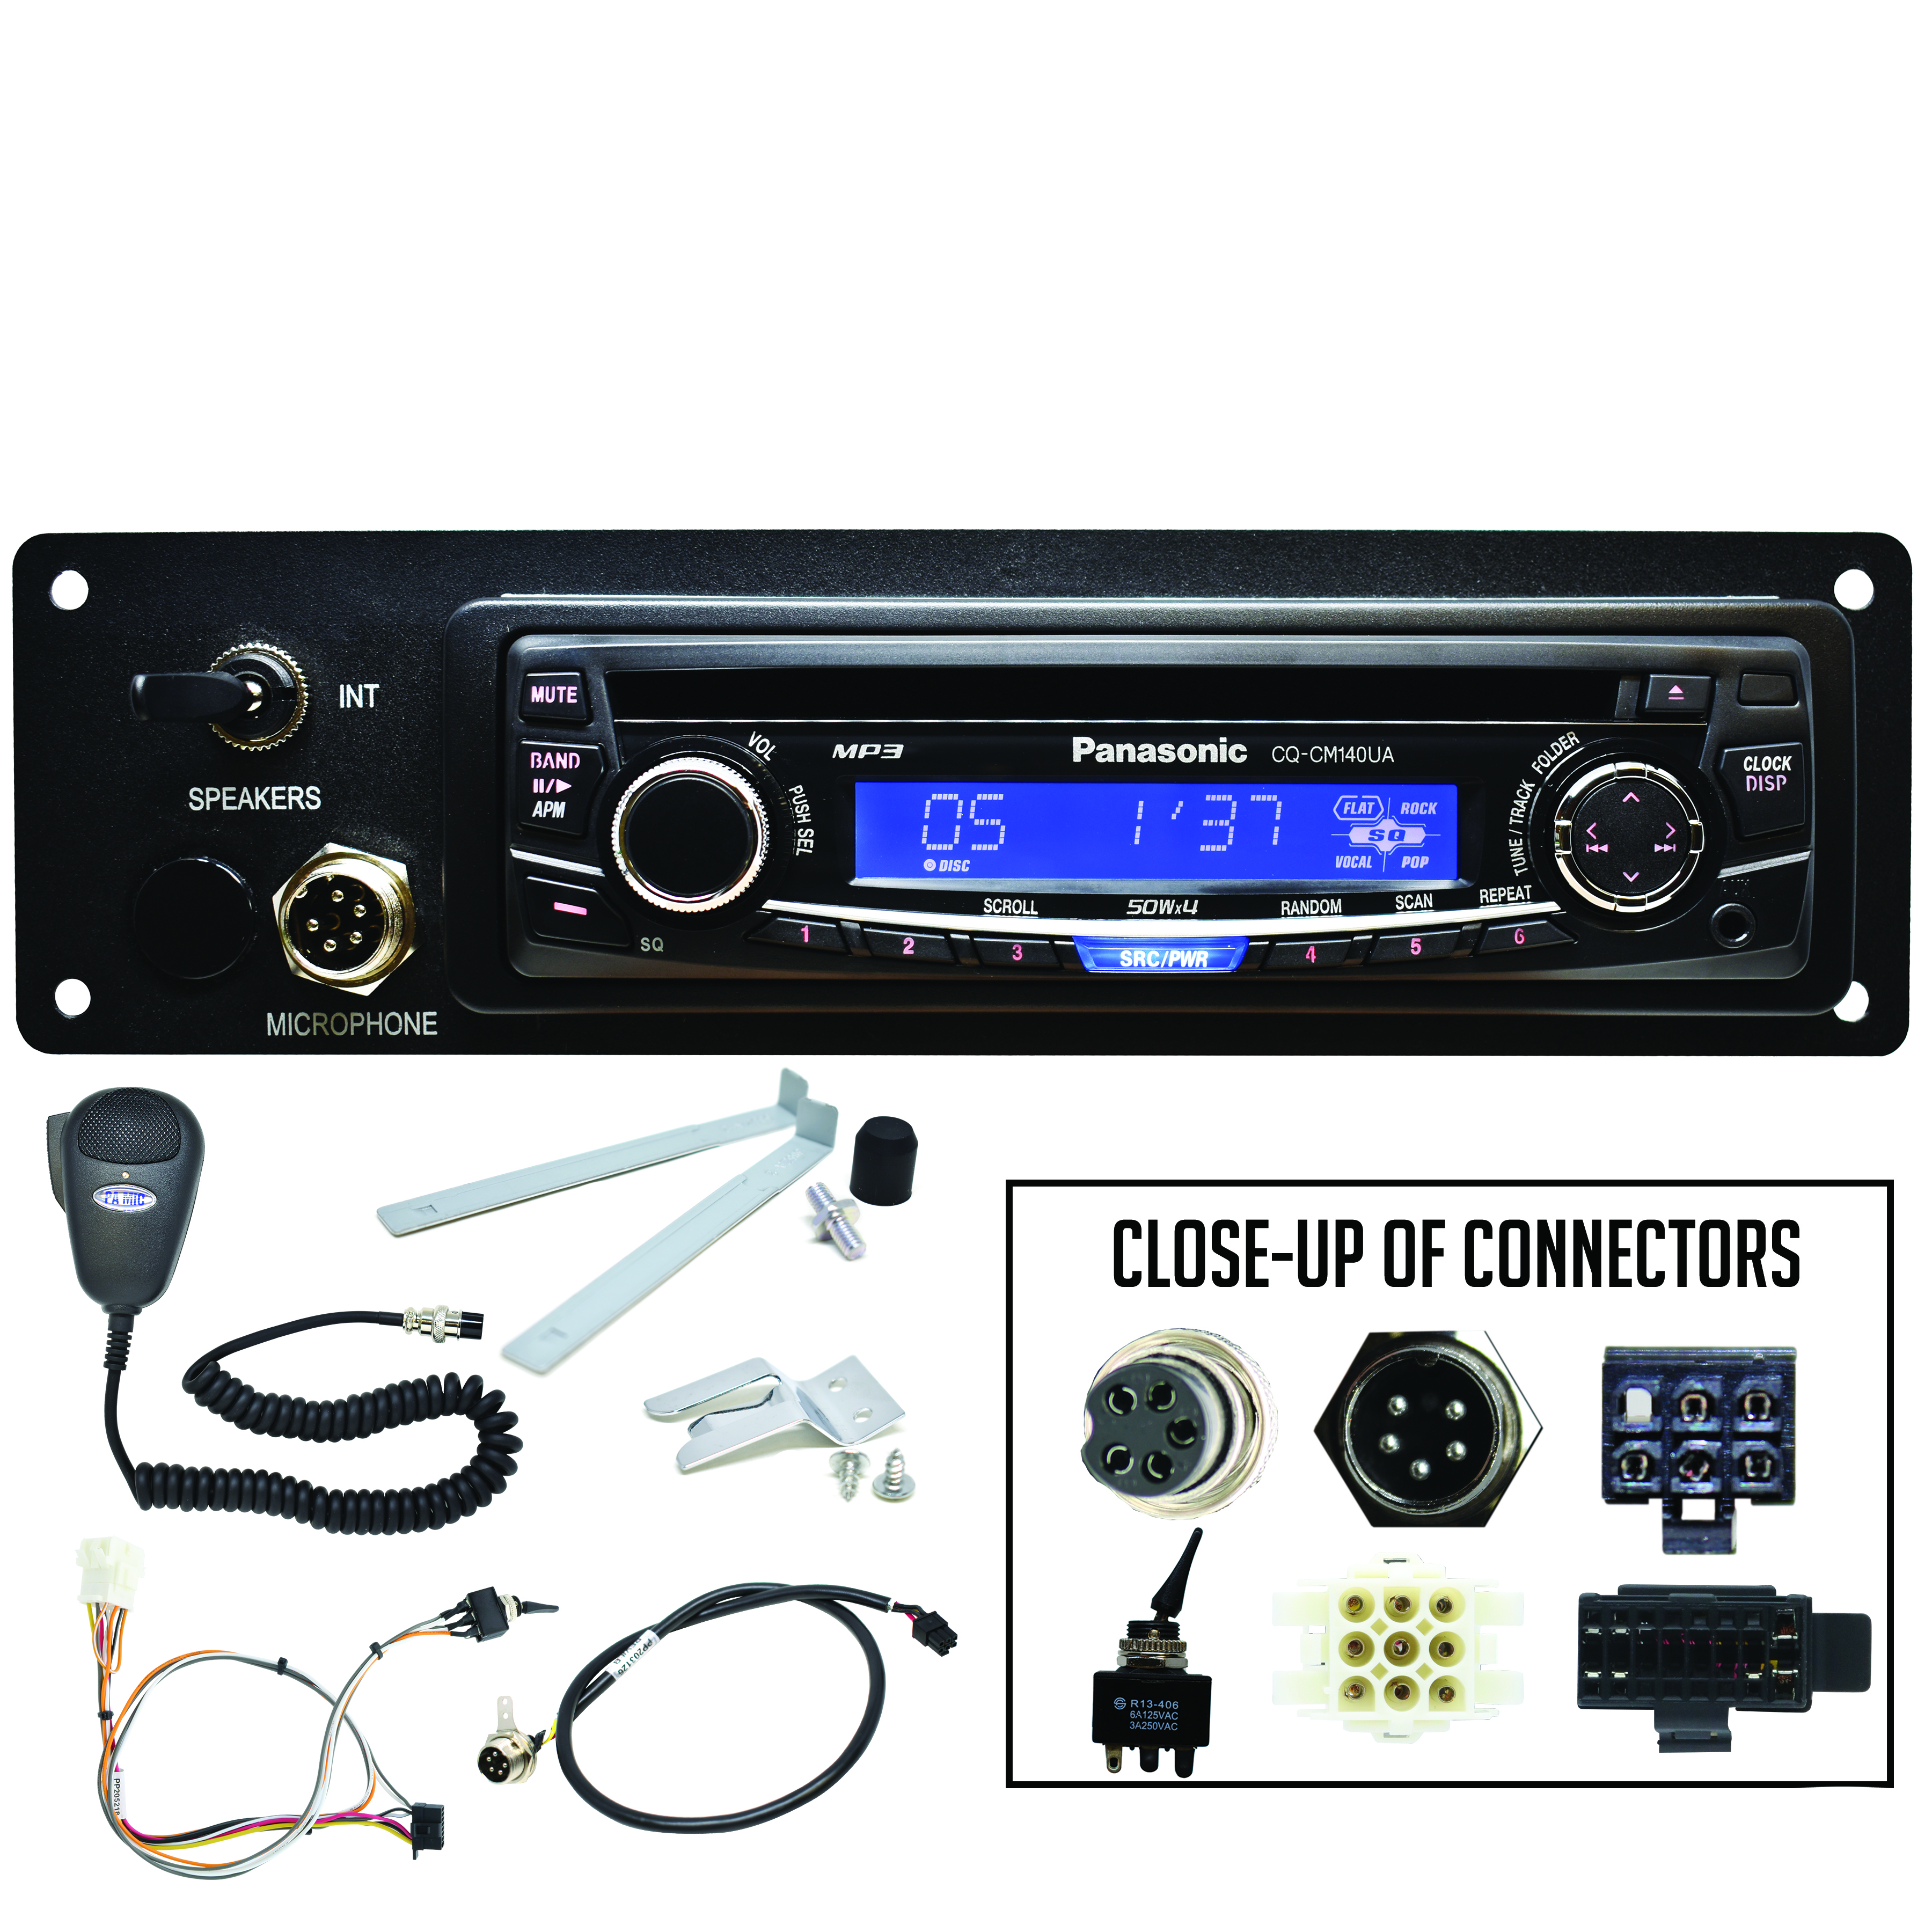 PANASONIC AM/FM/MP3/AUX Stereo with PA Adapter Panel, PA Microphone